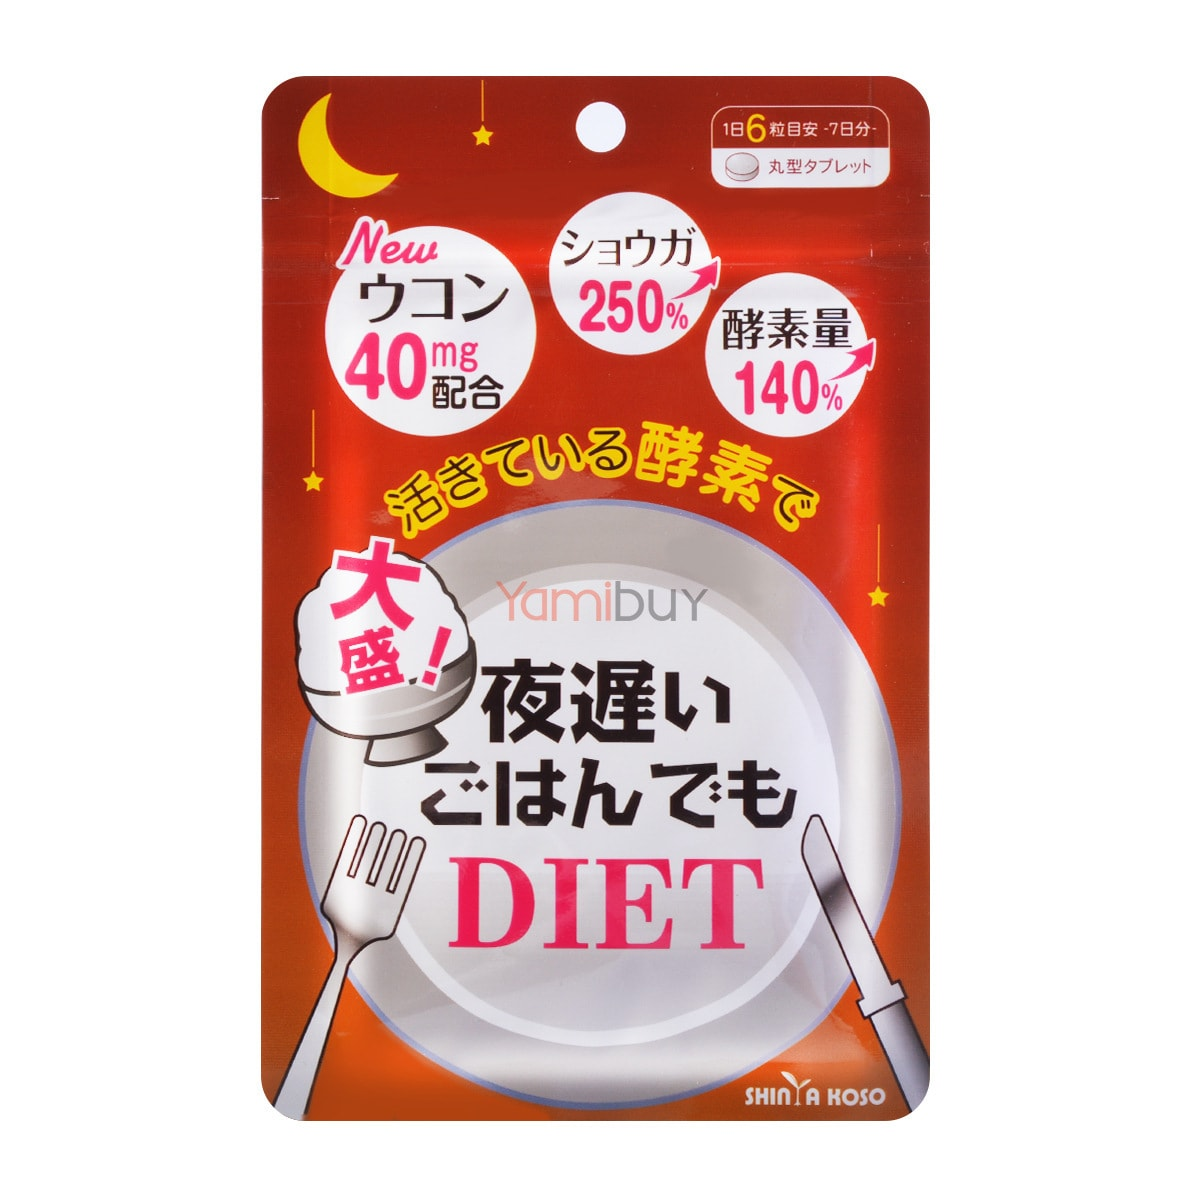 Yamibuy.com:Customer reviews:SHINYAKOSO NIGHT DIET Enzyme Plus 7 Days Limited